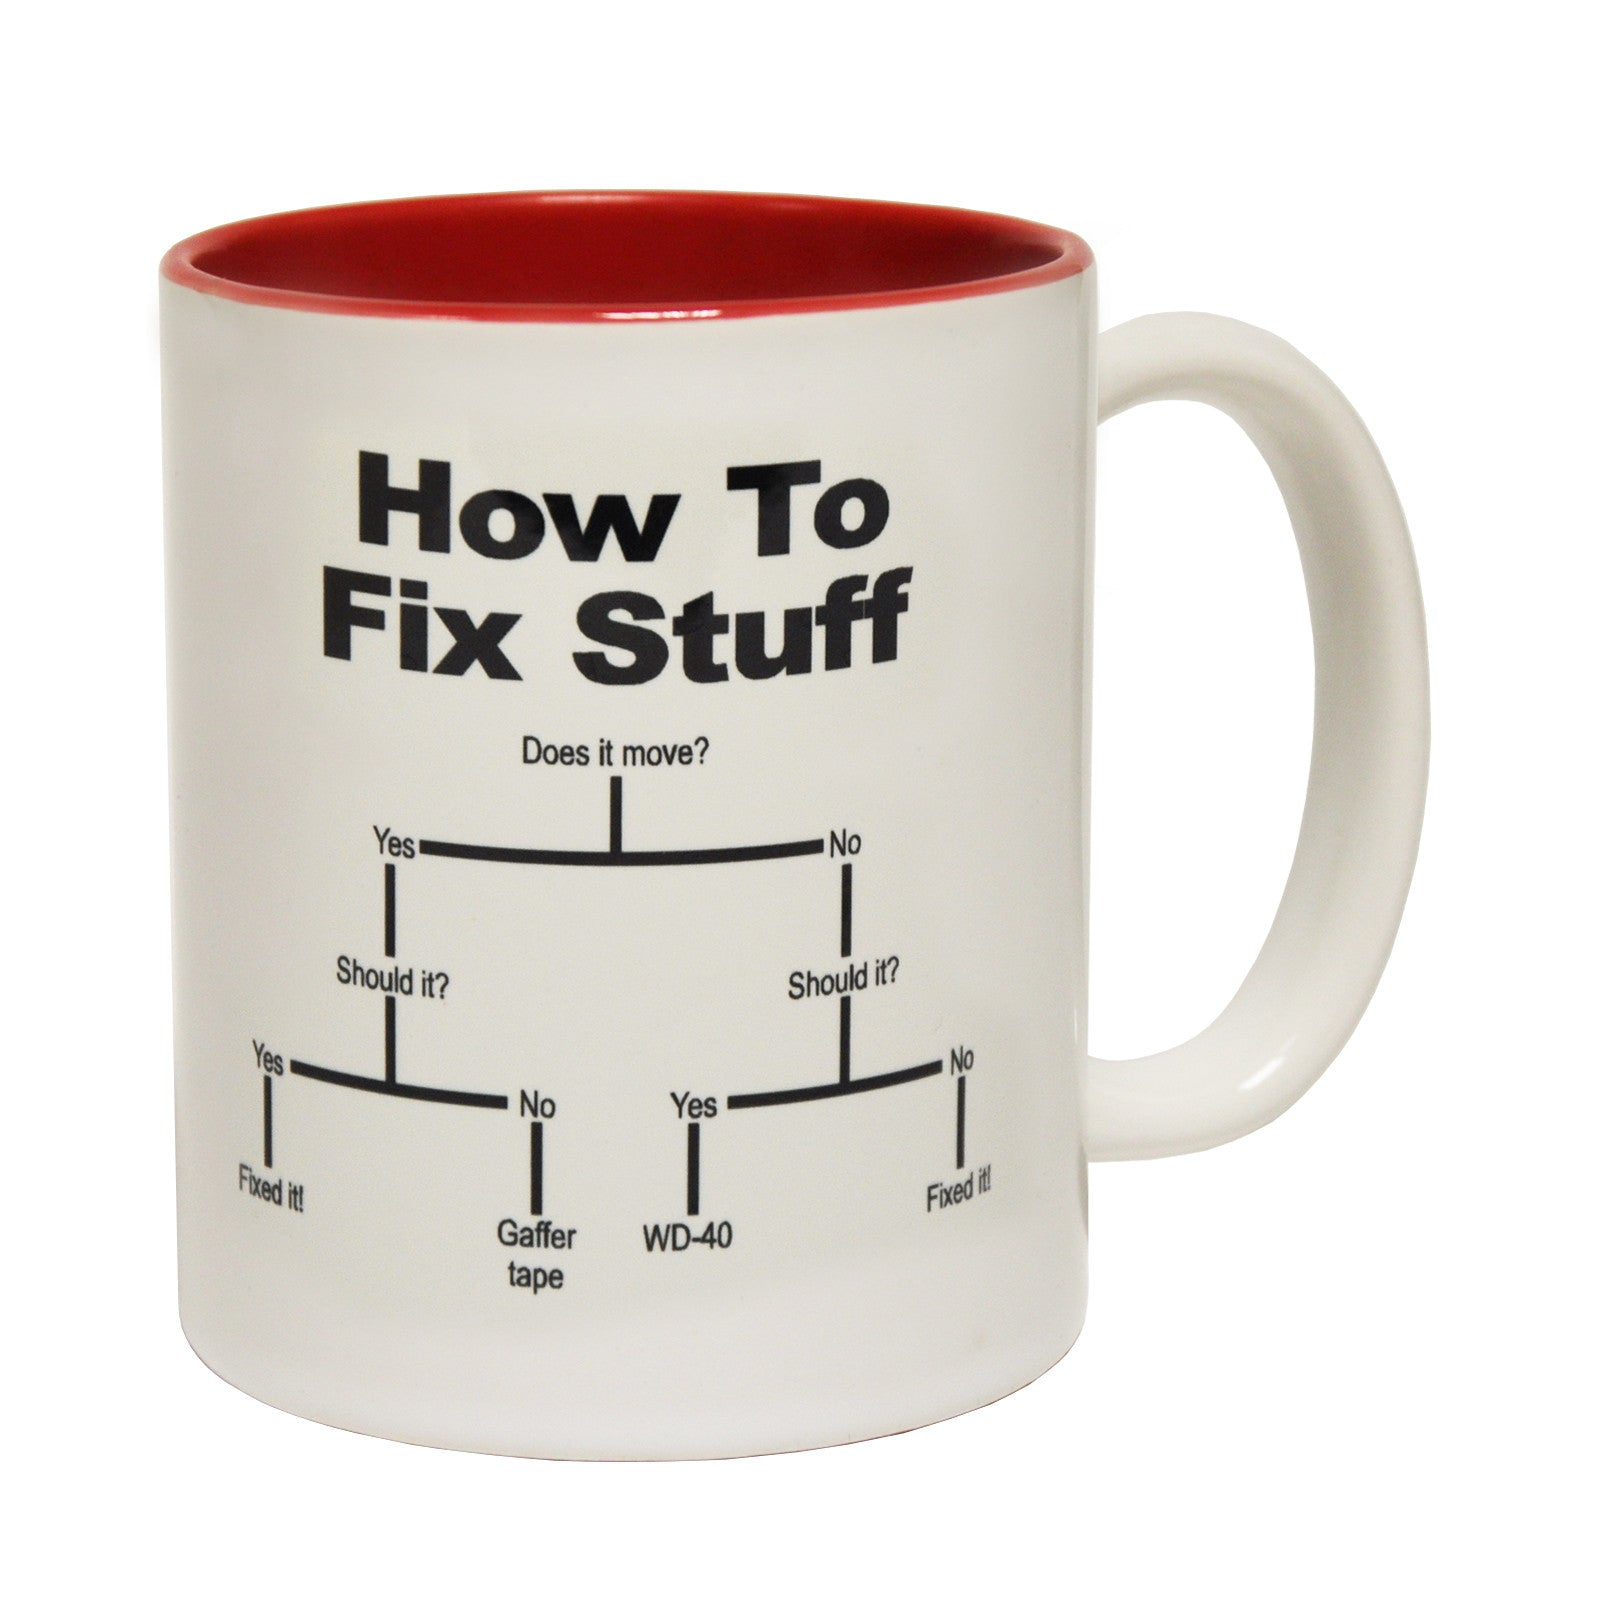 How to fix stuff coffee mug joke builder plumber Gifts for home builders